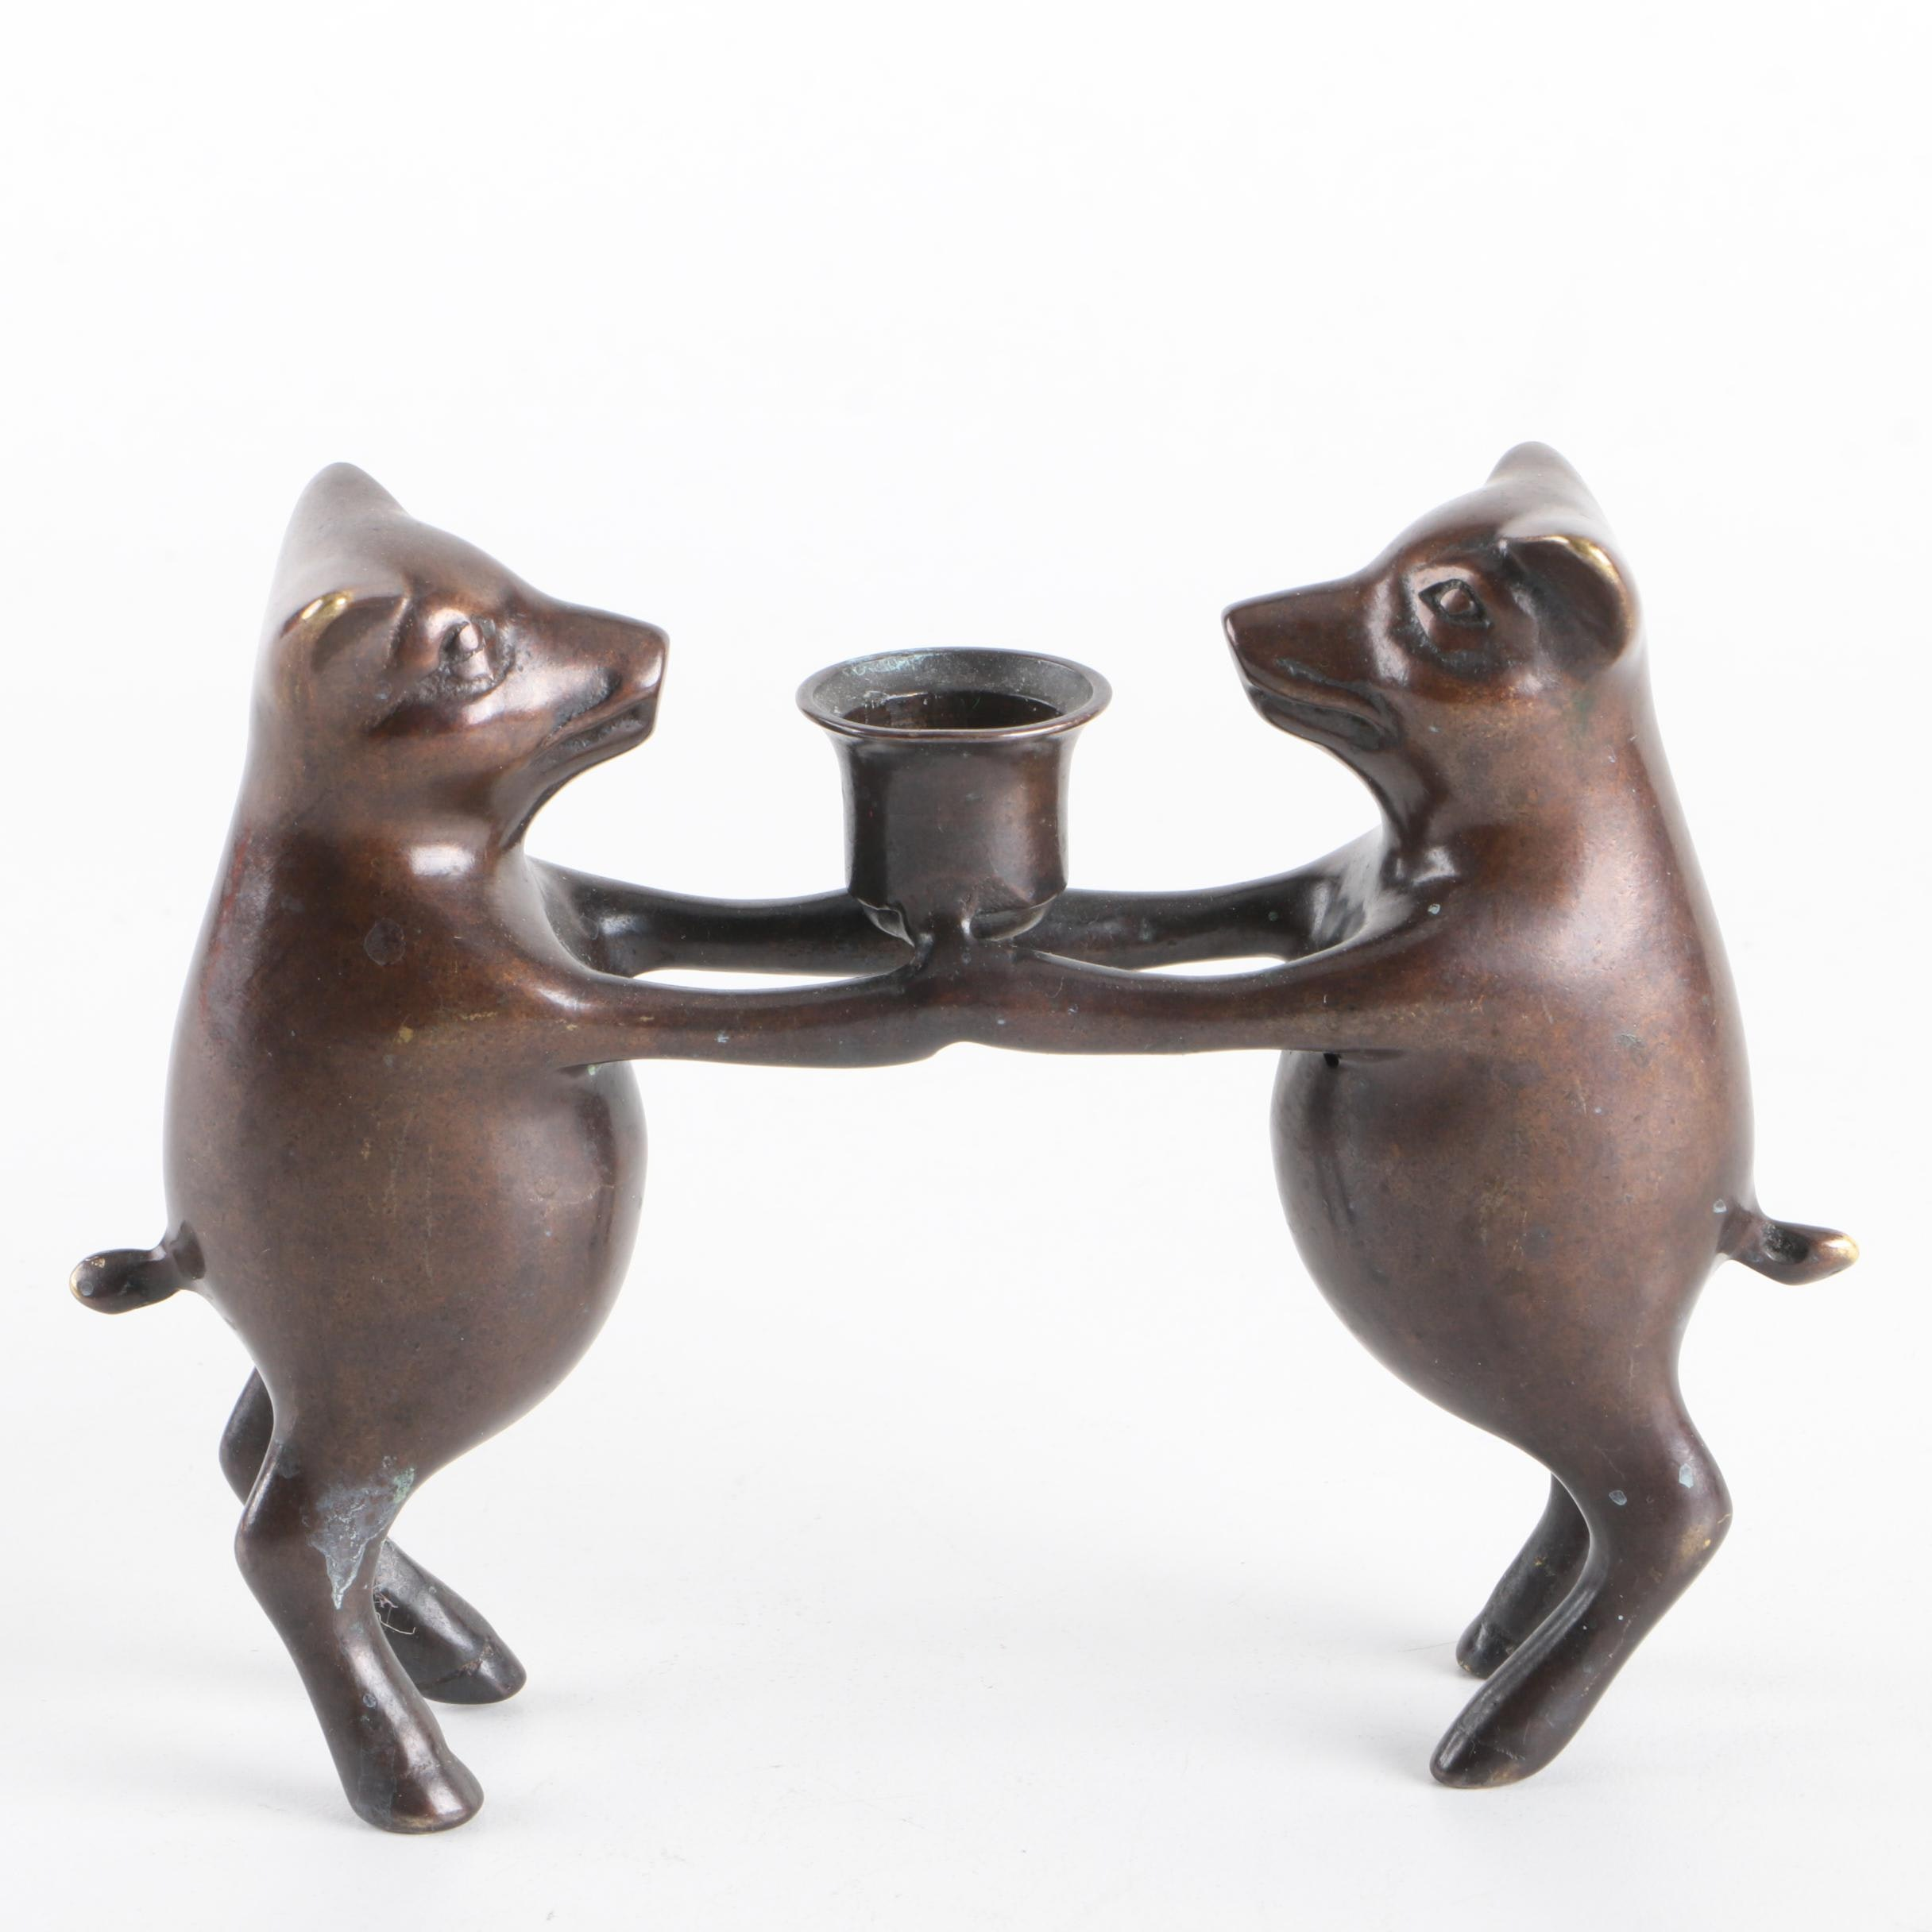 Metal Candleholder Featuring Two Pigs